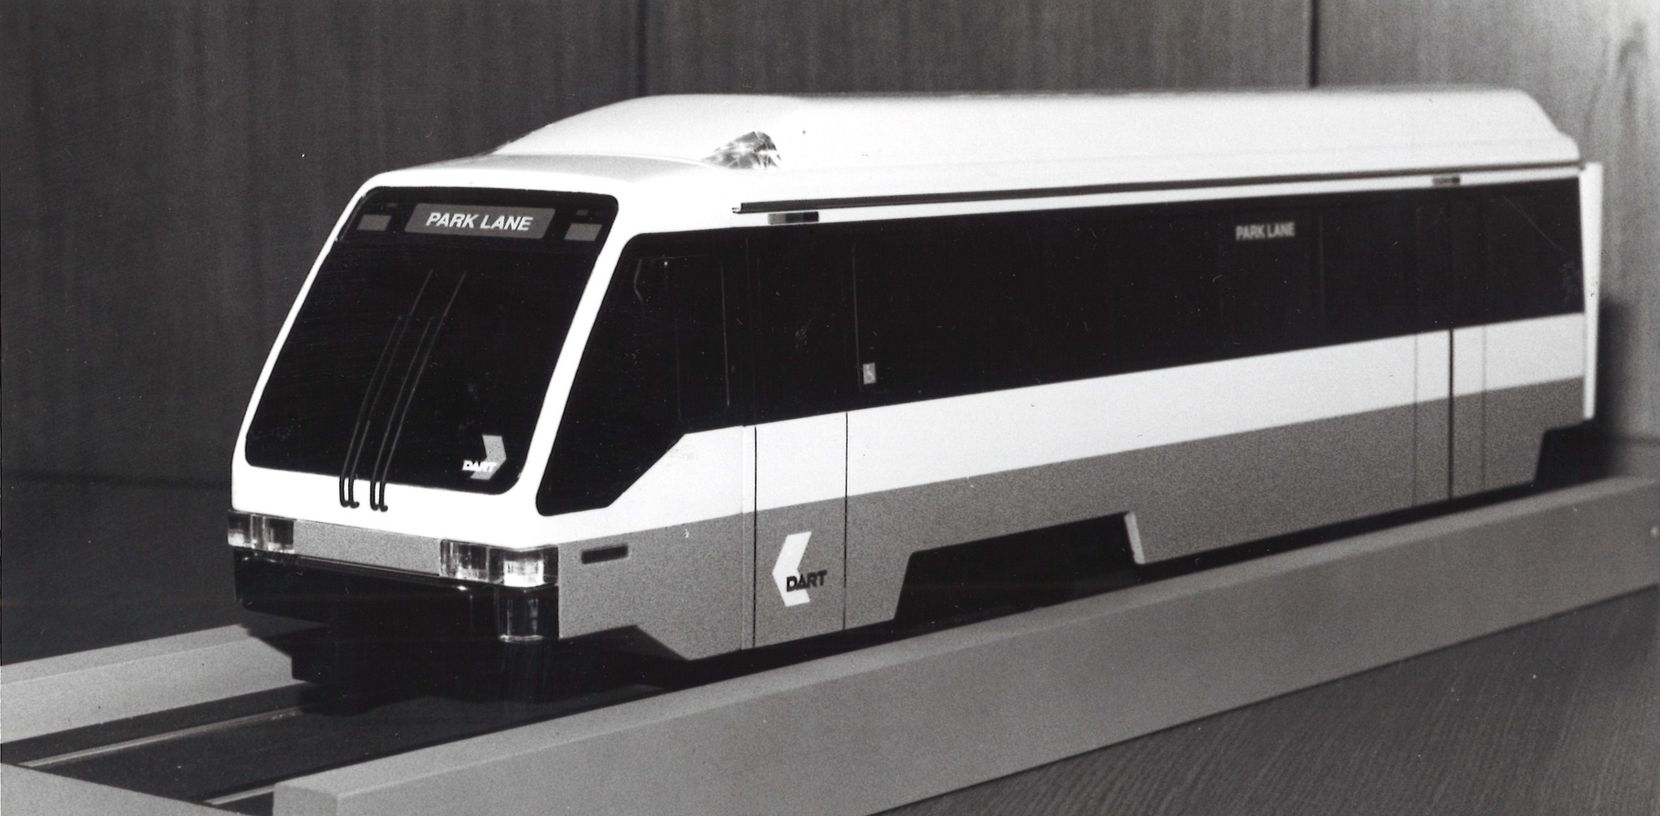 The new DART train revealed at the DART Press Conference in 1990.